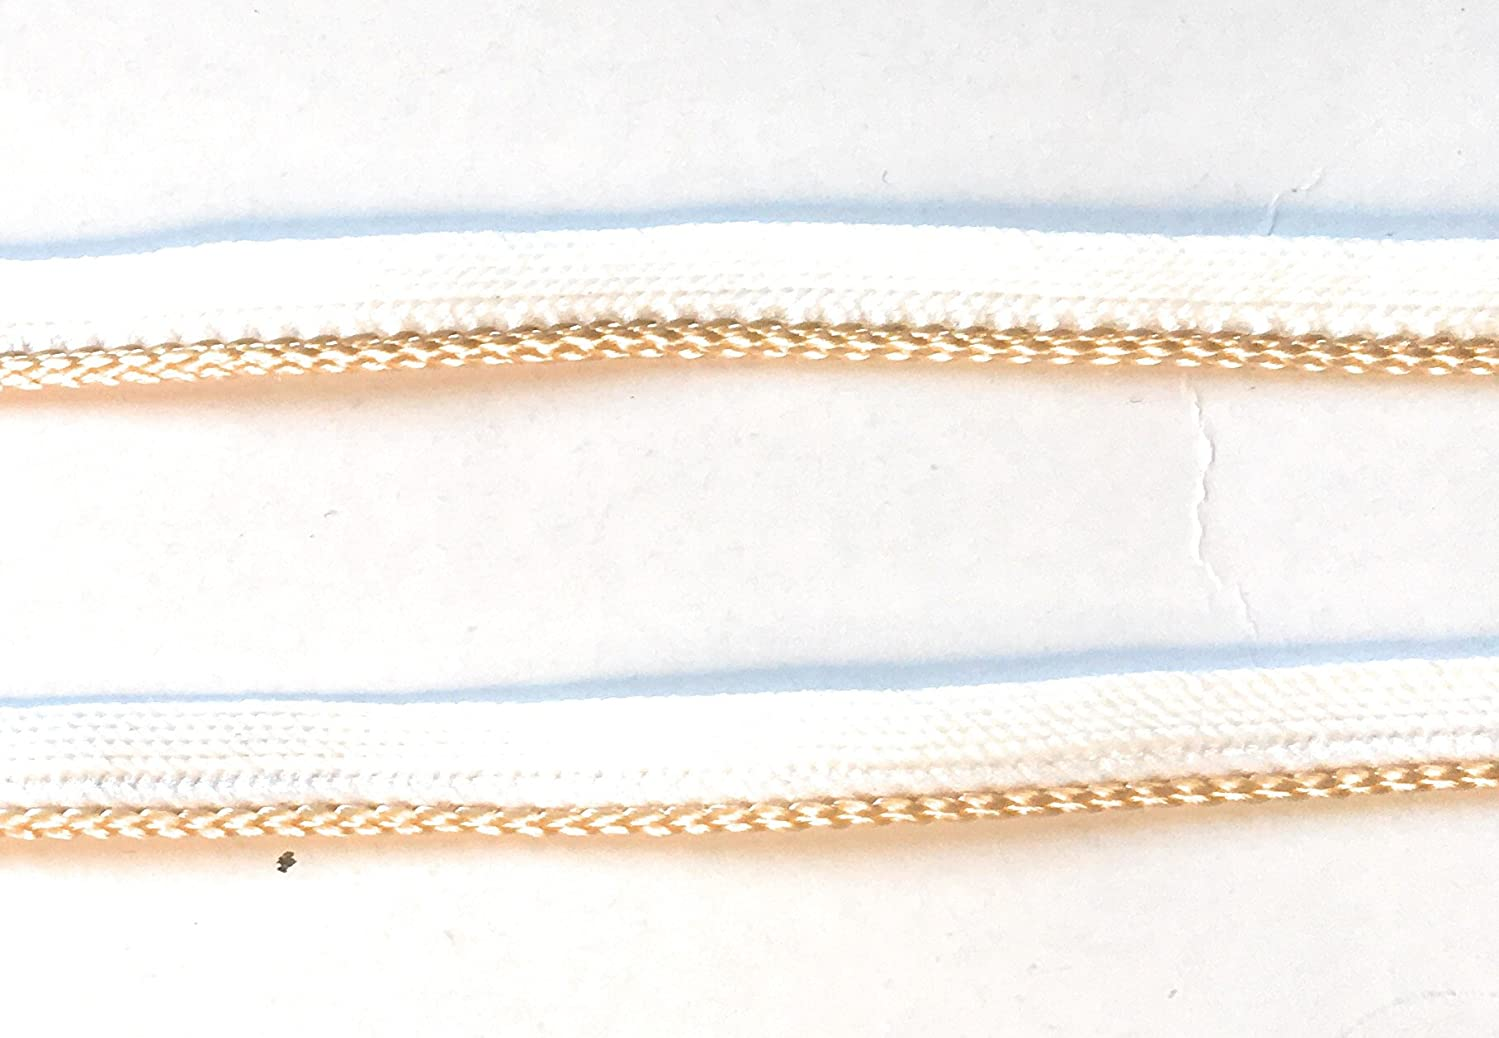 LIP CORDING Nude (Lt Beige) Spiral Edge Trim -Cord-edge -Piping Trim for Clothing Pillows, Lamps, Draperies 5 Yards Pi-129